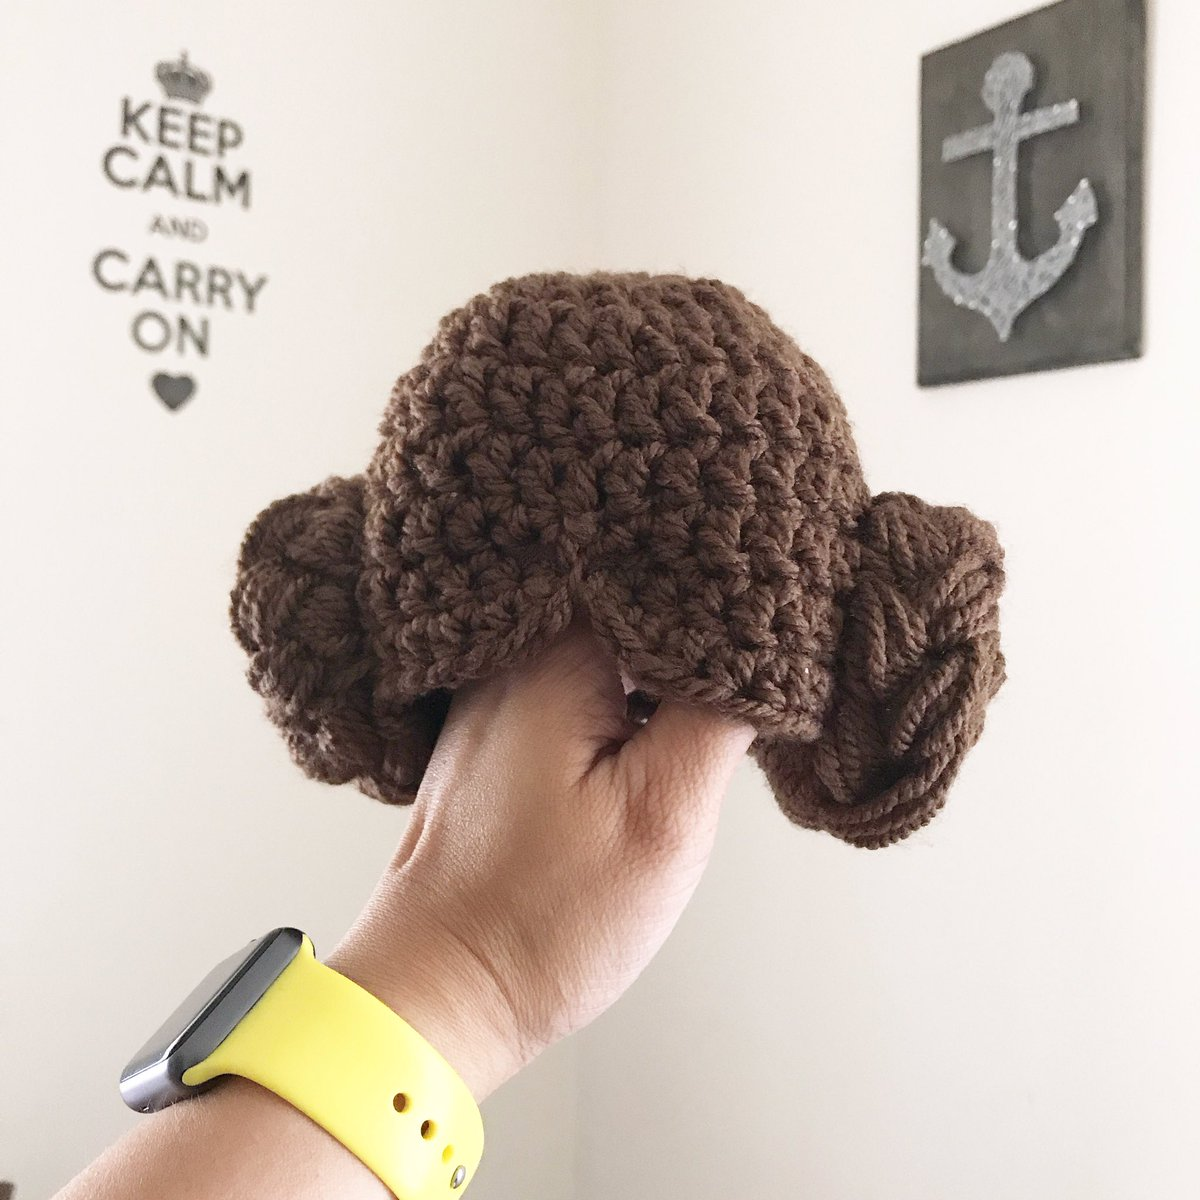 Good morning world. Made this Princess Leia beanie awhile ago and it&#39;s ready to ship to Virginia. #crochet #starwars #princessleia <br>http://pic.twitter.com/YcsDY9pNh5